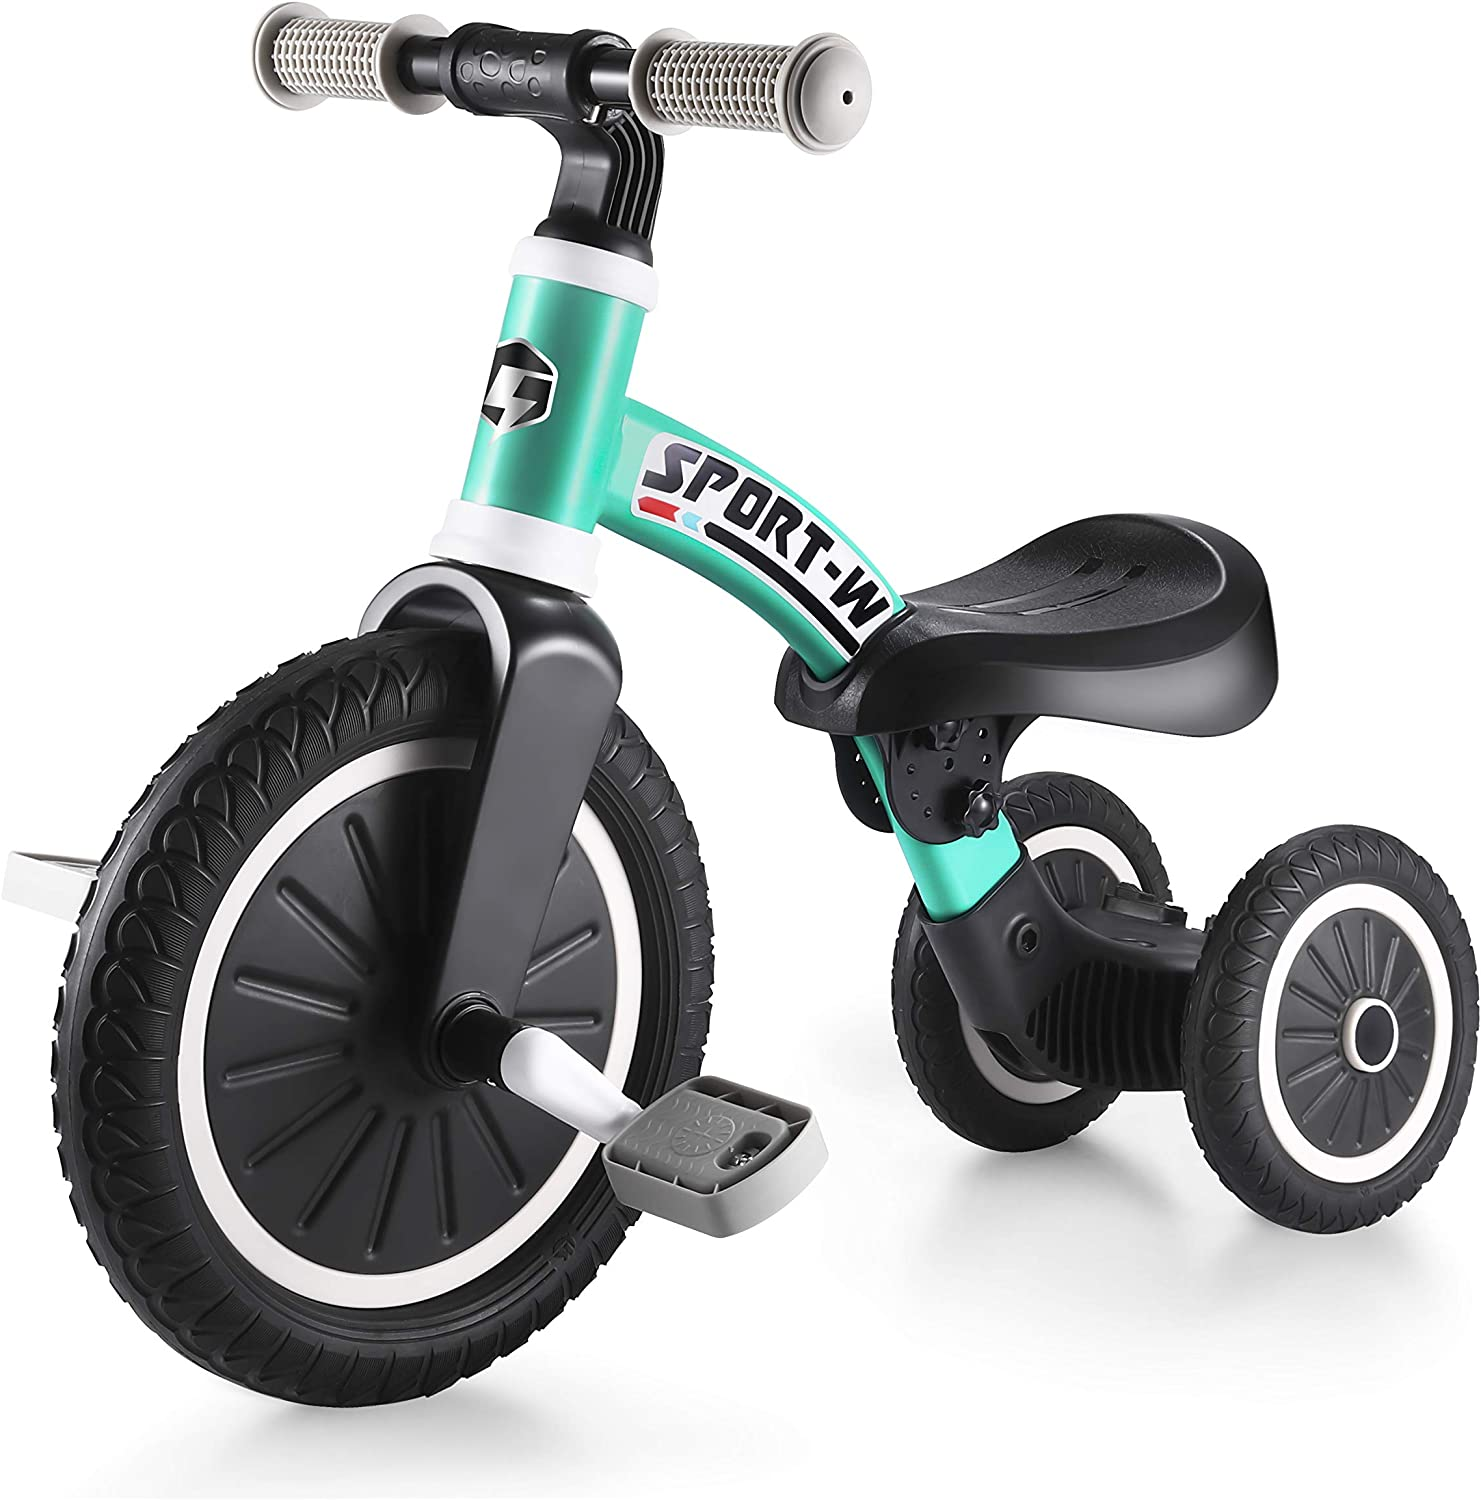 Kids Tricycles Balance Bike 2 in 1 for 2-4 Years Old Kids Extendable 2 Wheel or 3 Wheel Trike 3 Wheel Toddler Bike with Detachable Pedals and Telescopic Wheel,Indoor Outdoor